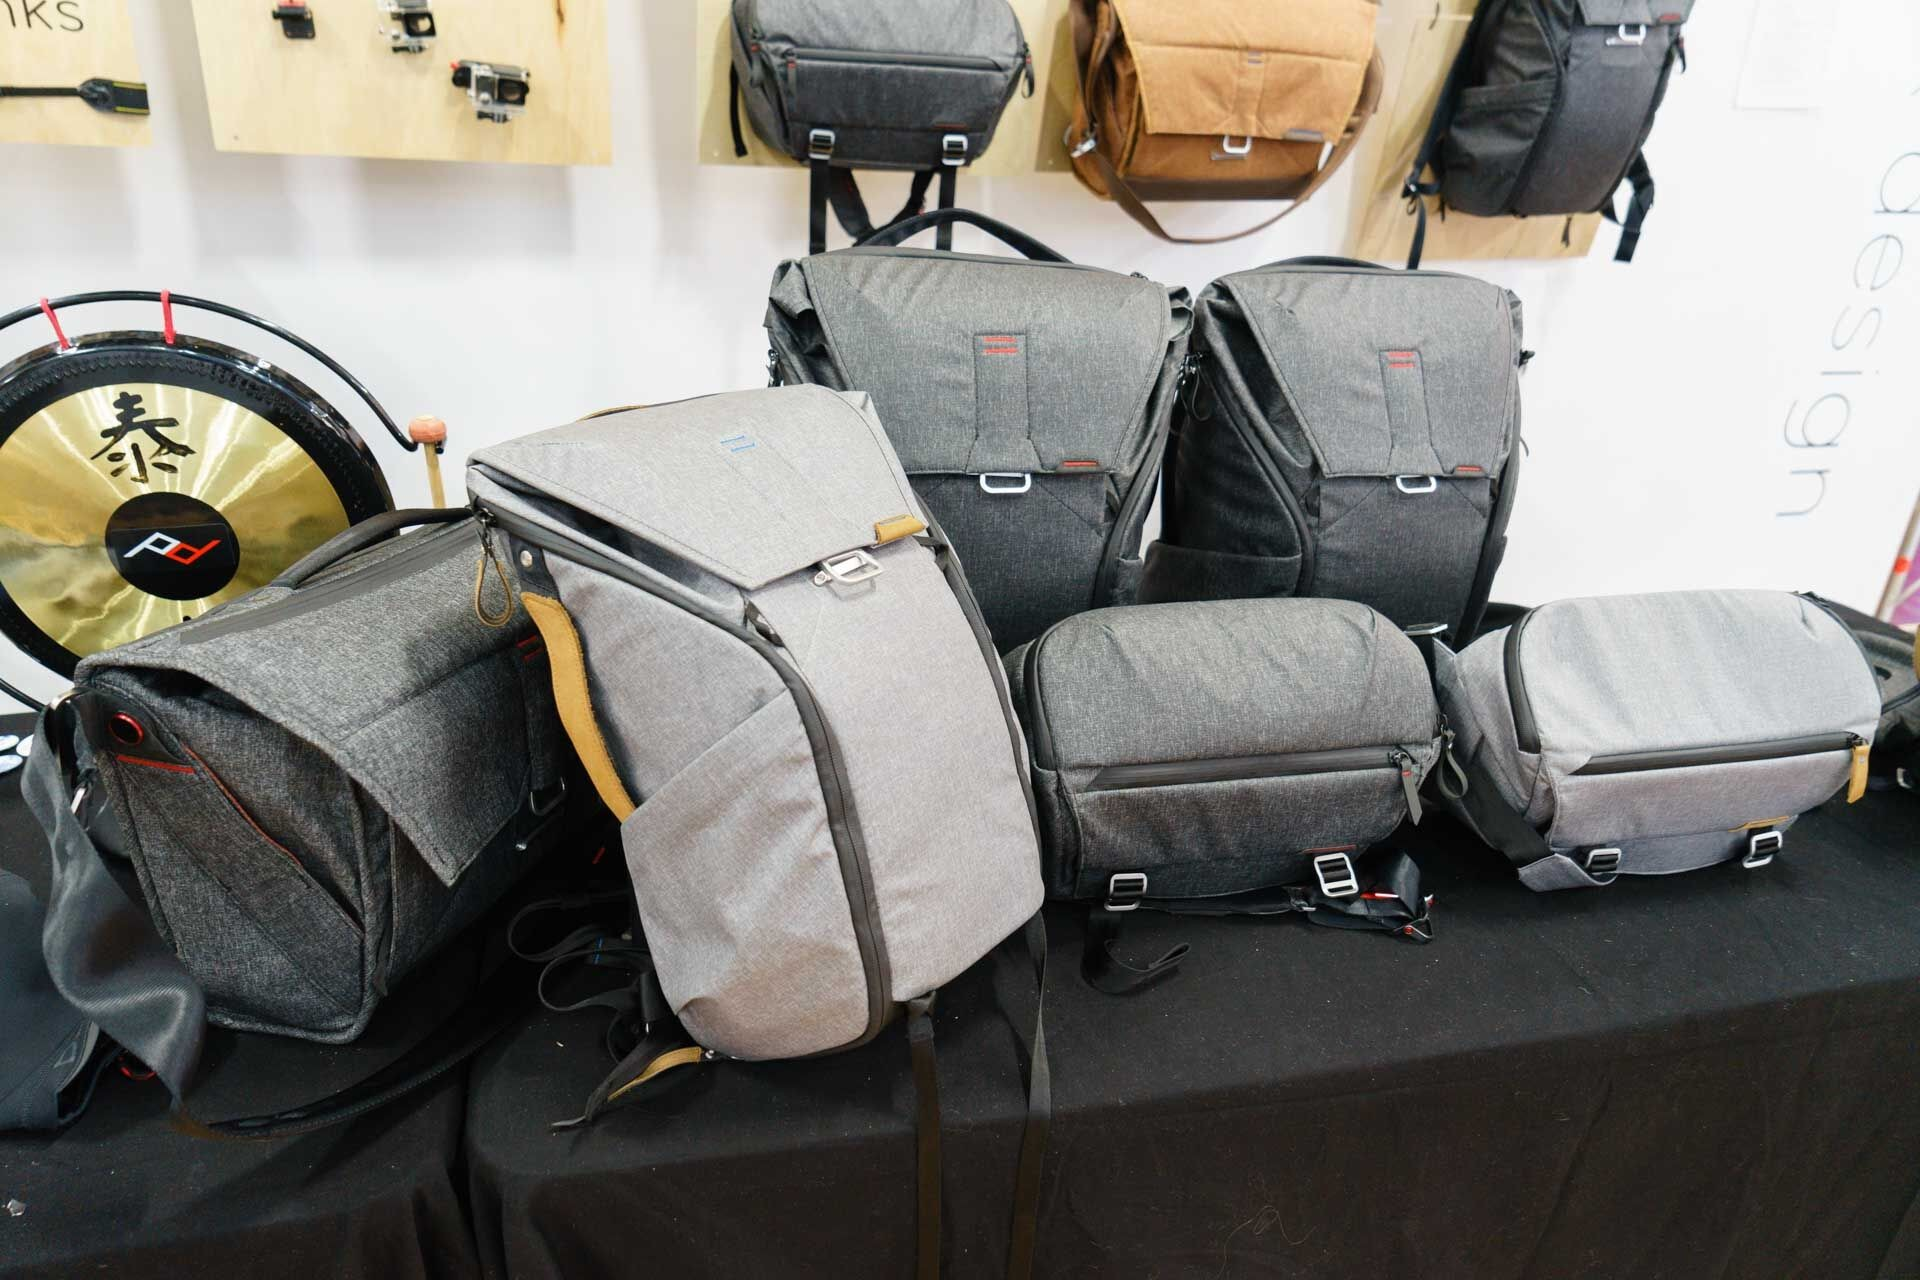 peak-designs-upcoming-everyday-bag-collection-8